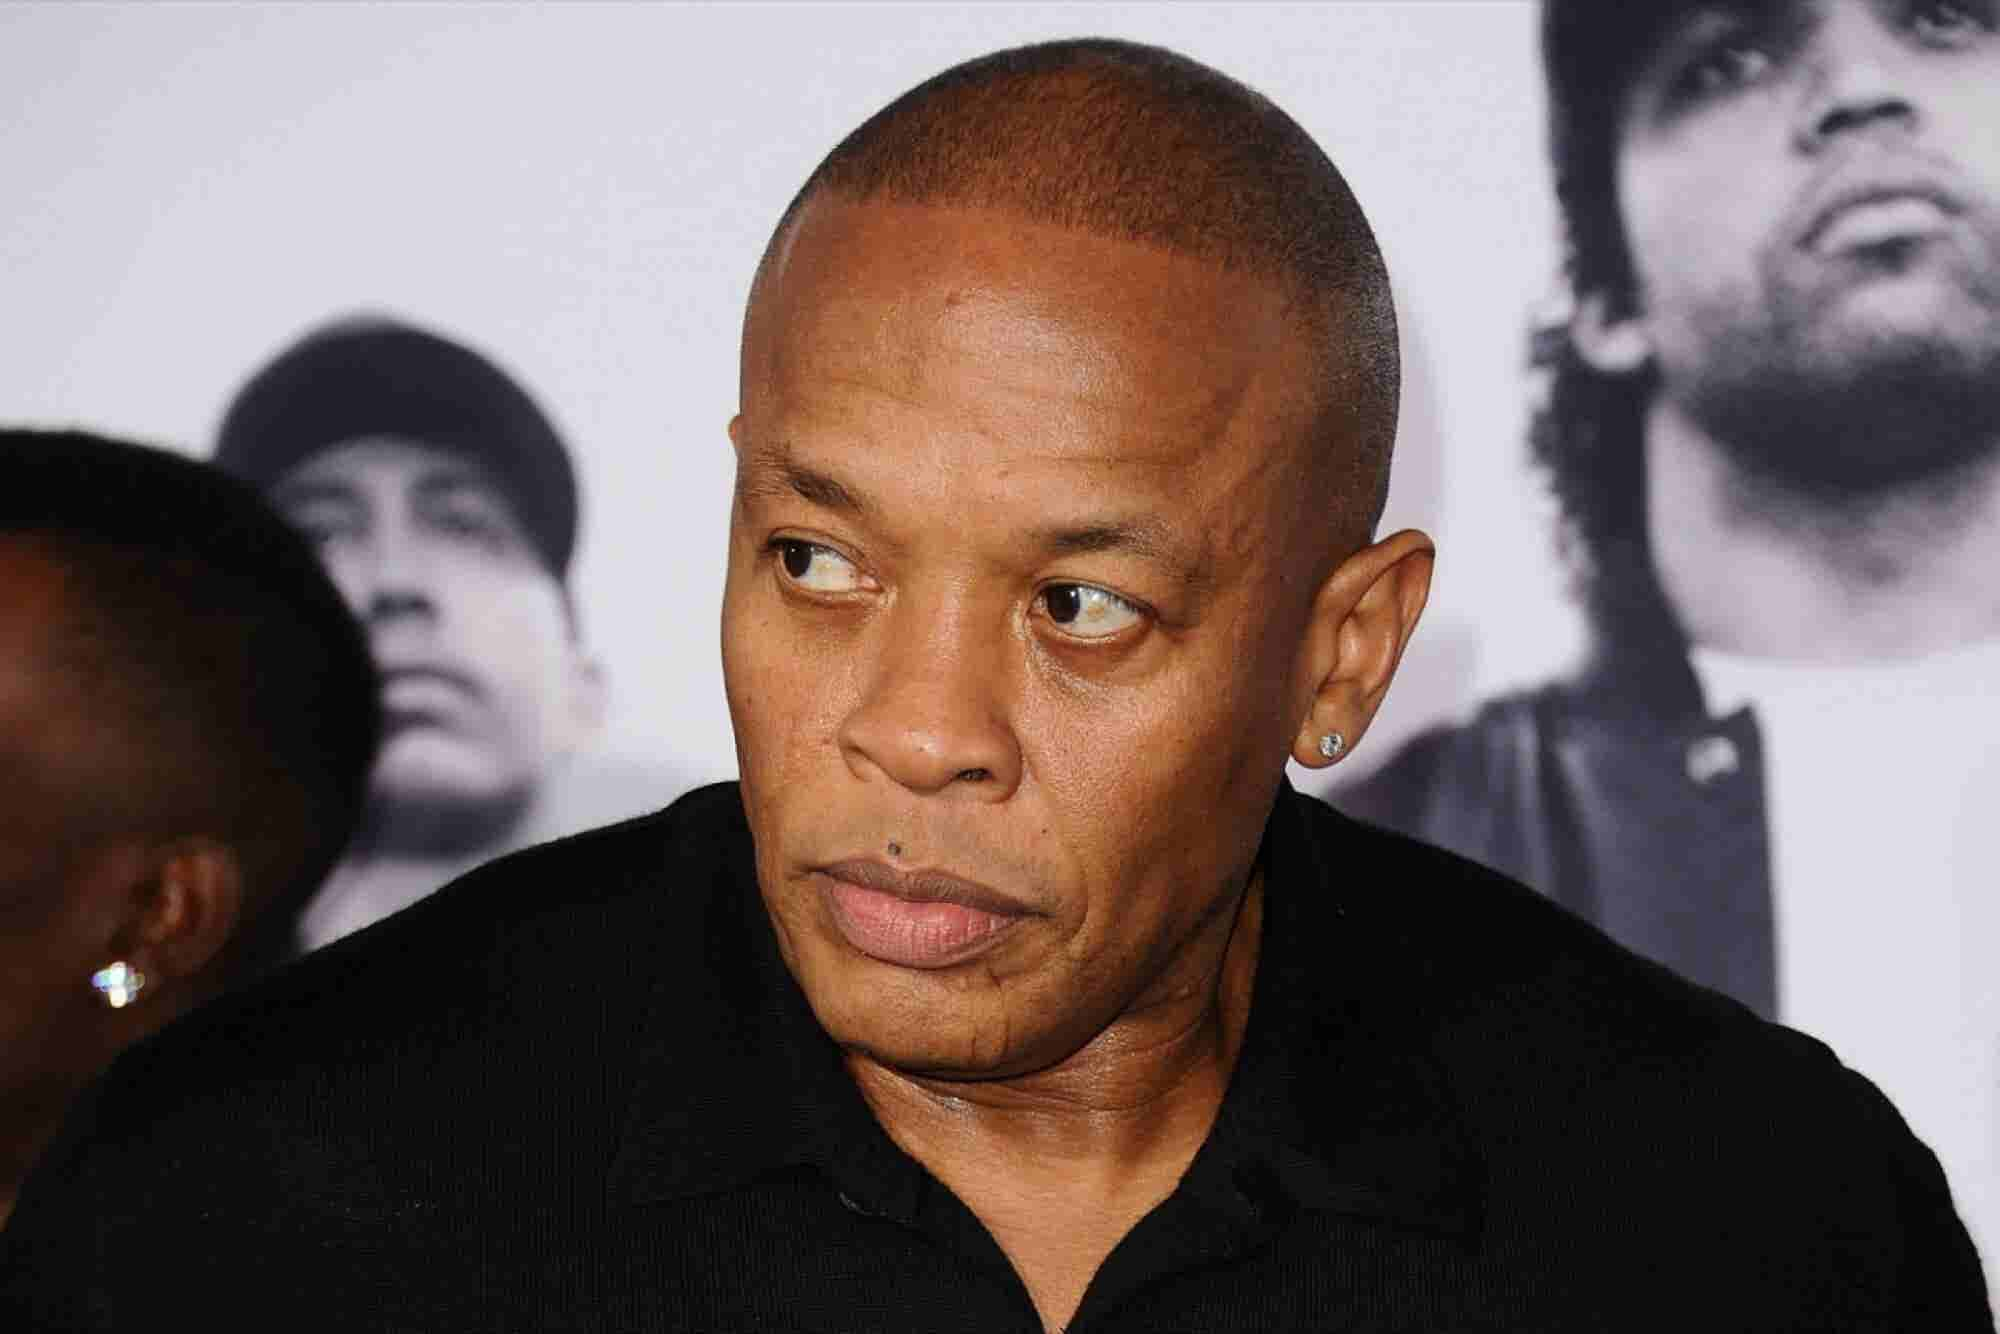 Dr. Dre Will Reportedly Star in Apple's First Original TV Series